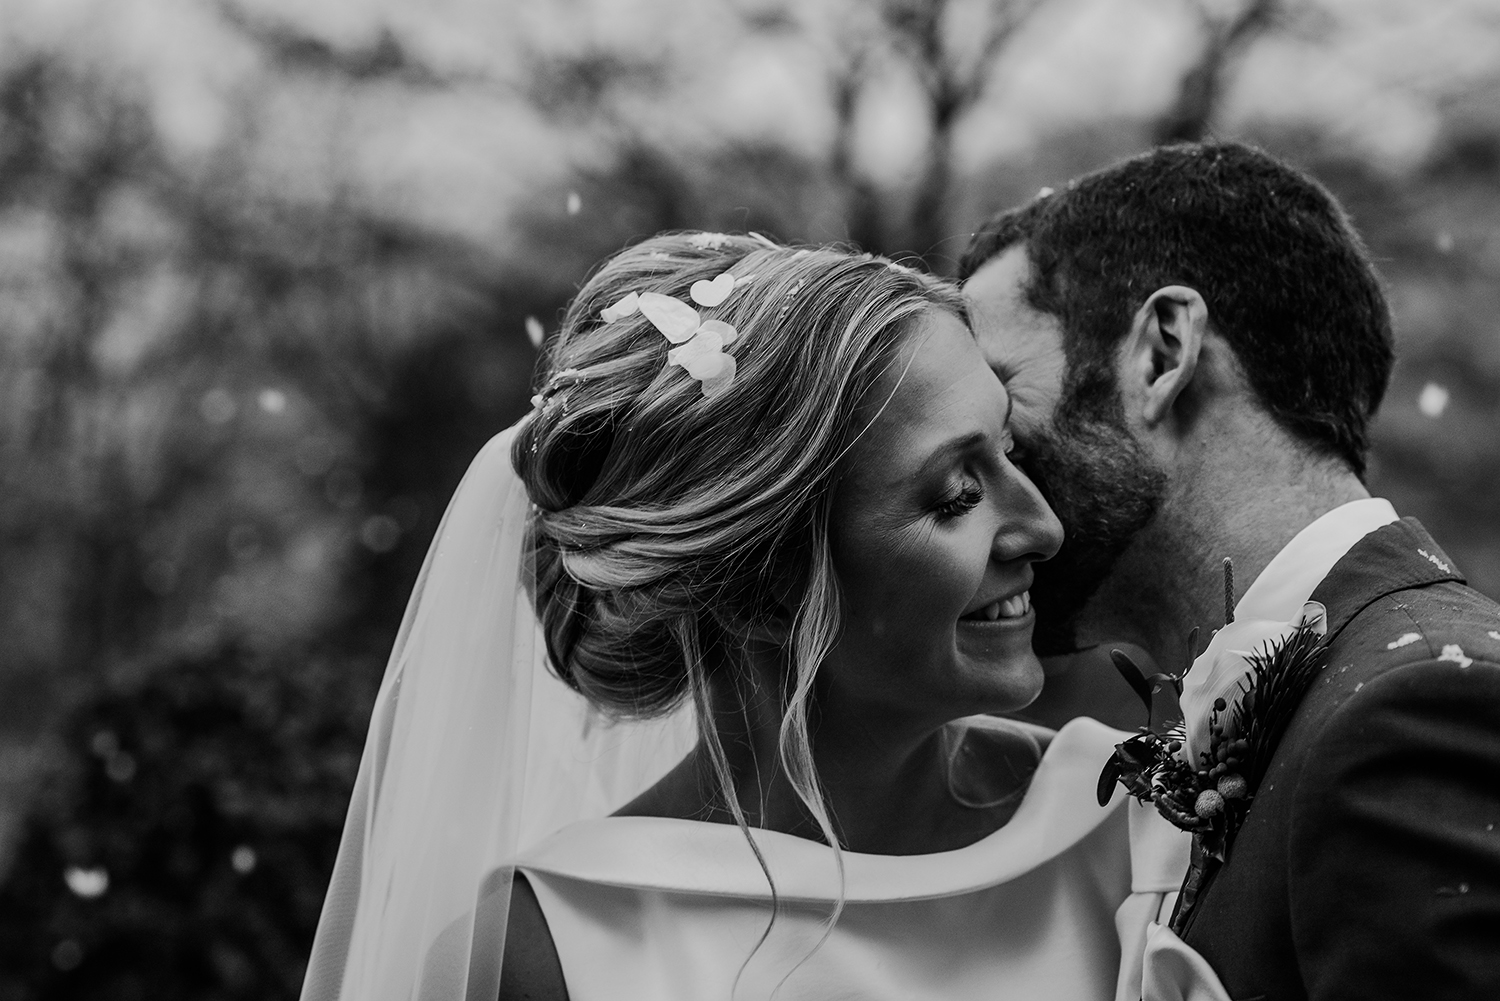 Black and white photo of the groom kissing the bride in the snow